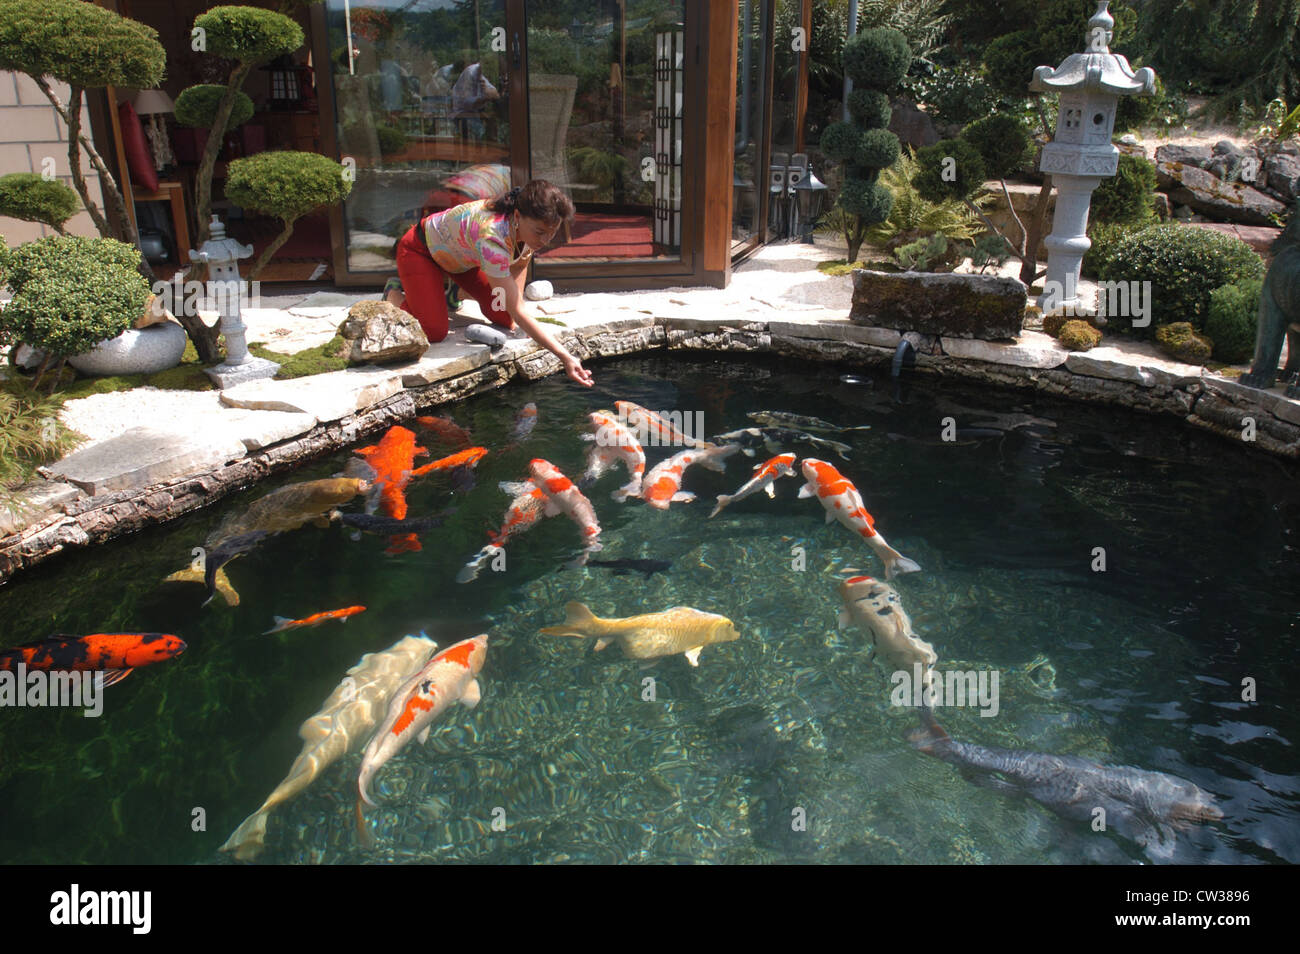 Koi pond in reigoldswil switzerland stock photo royalty for The koi pool